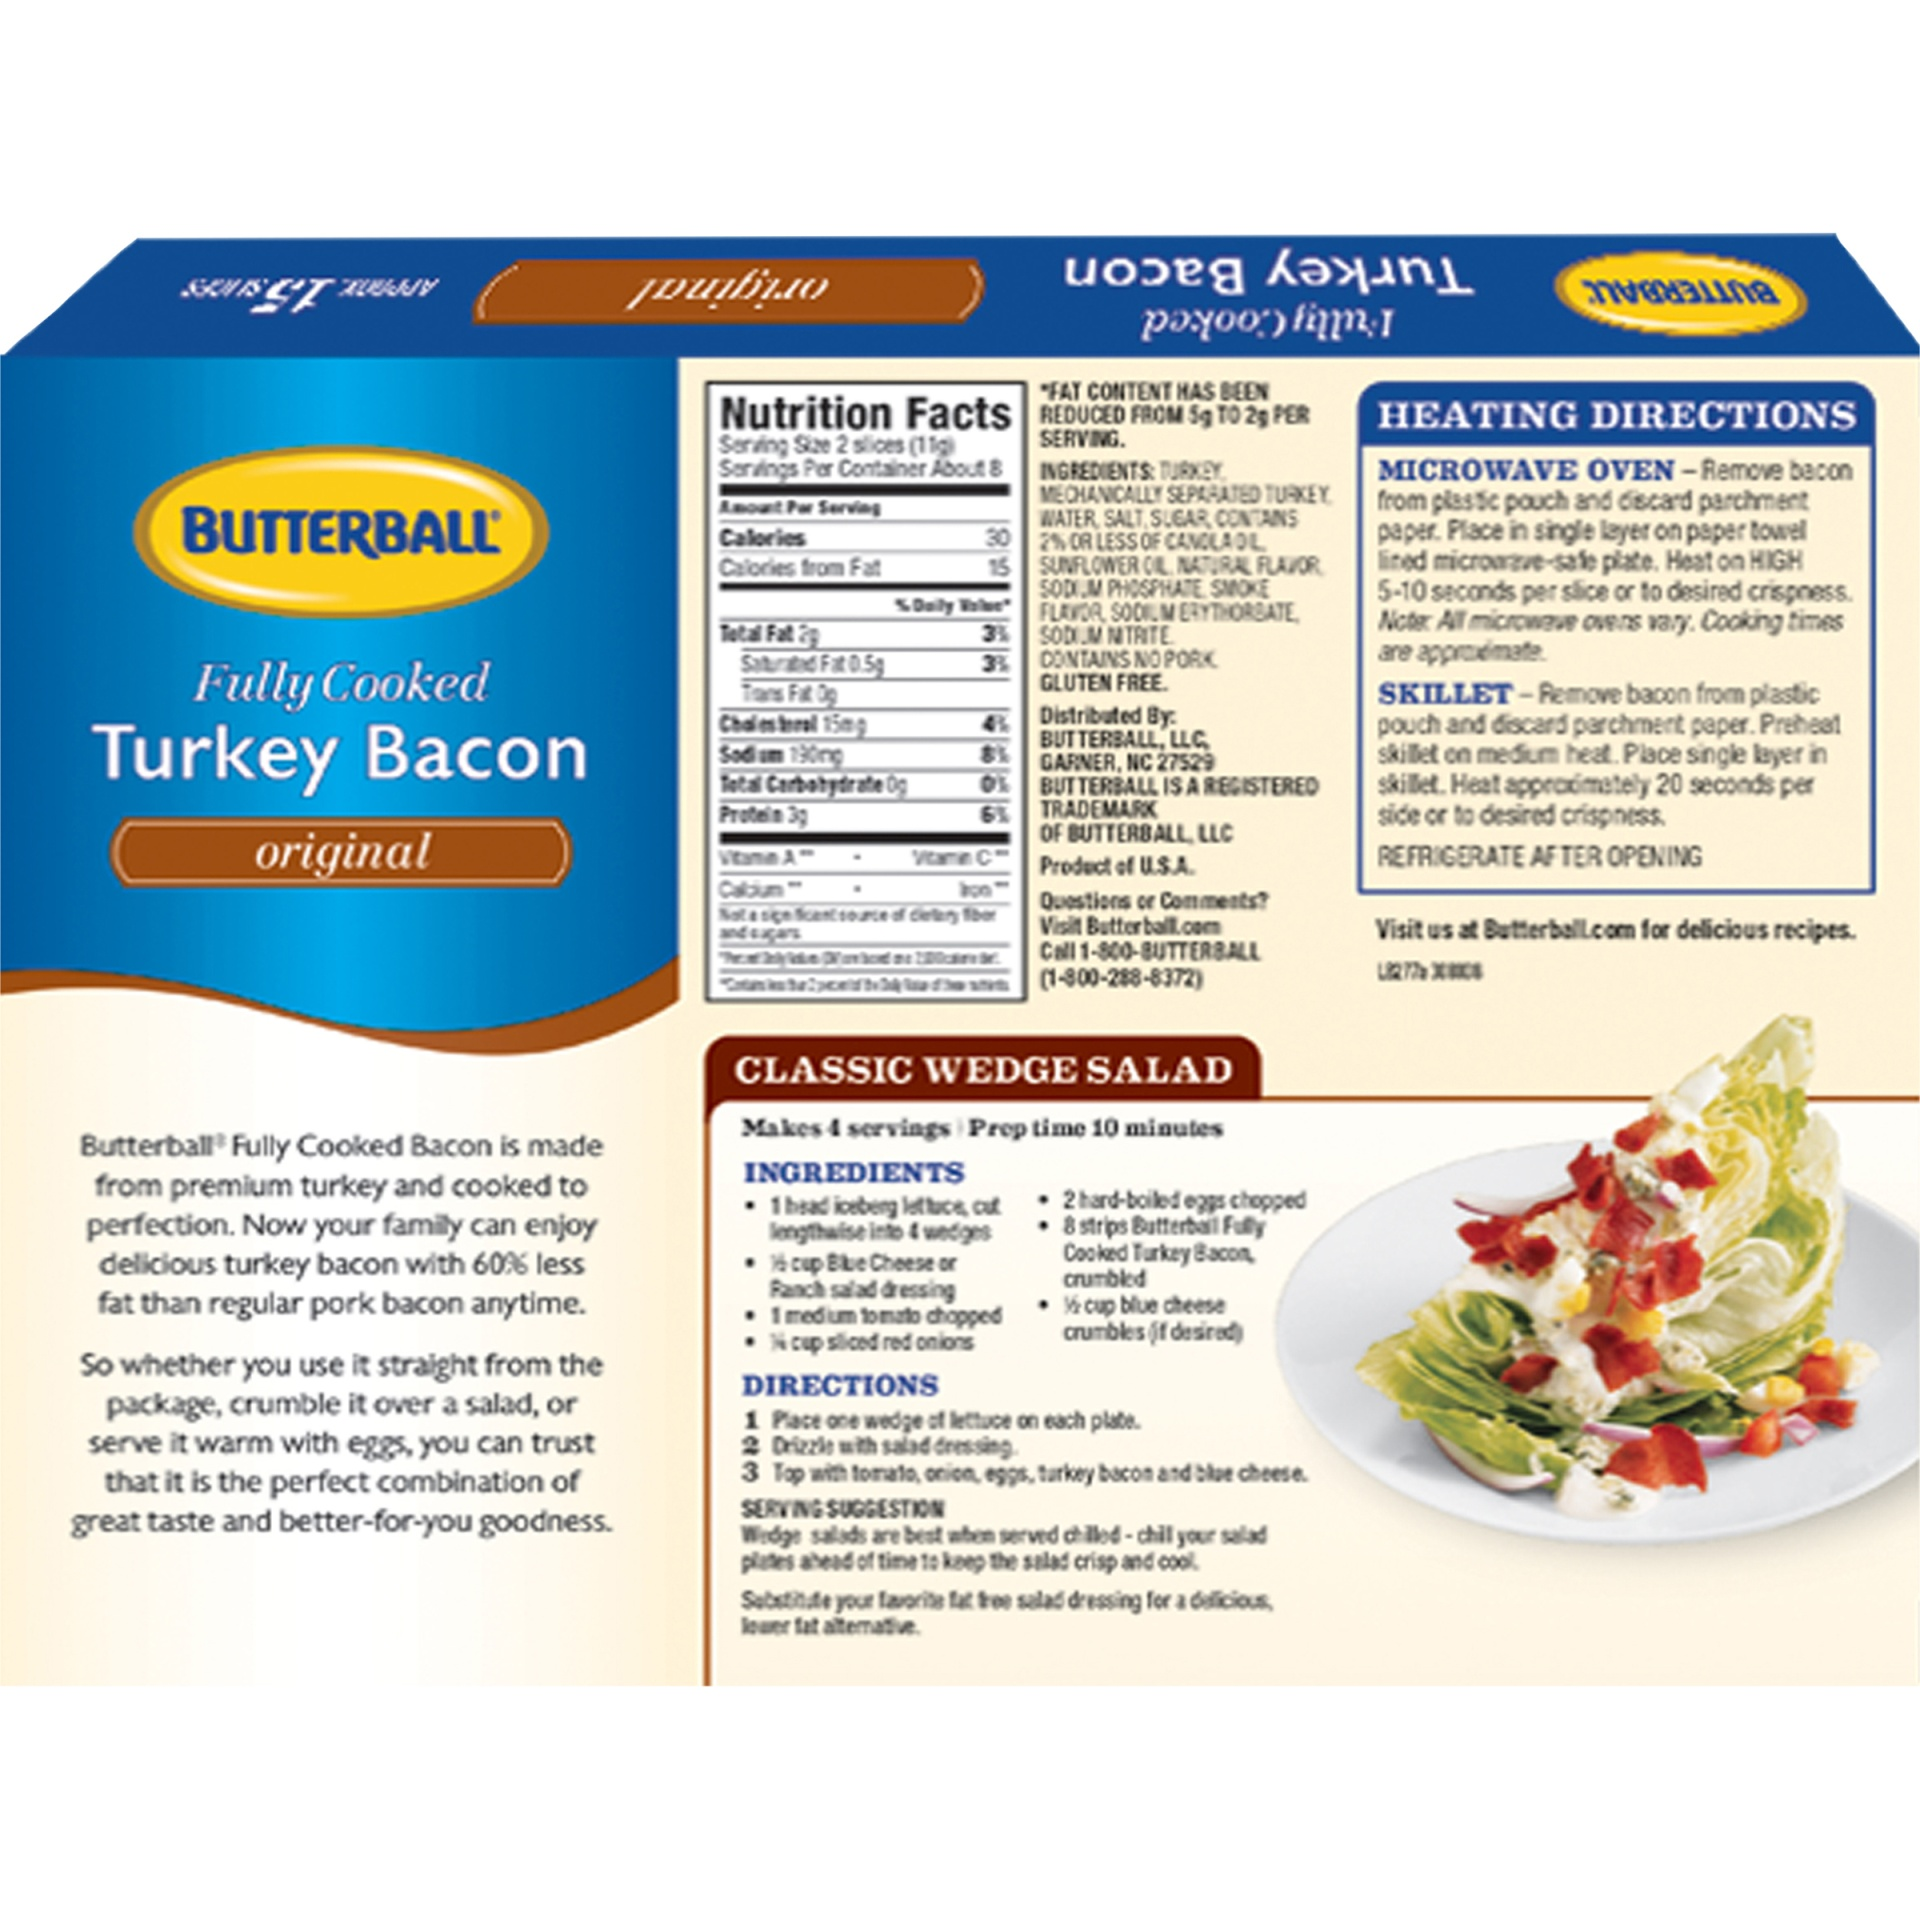 slide 6 of 8, Butterball Every Day Original Fully Cooked Turkey Bacon,